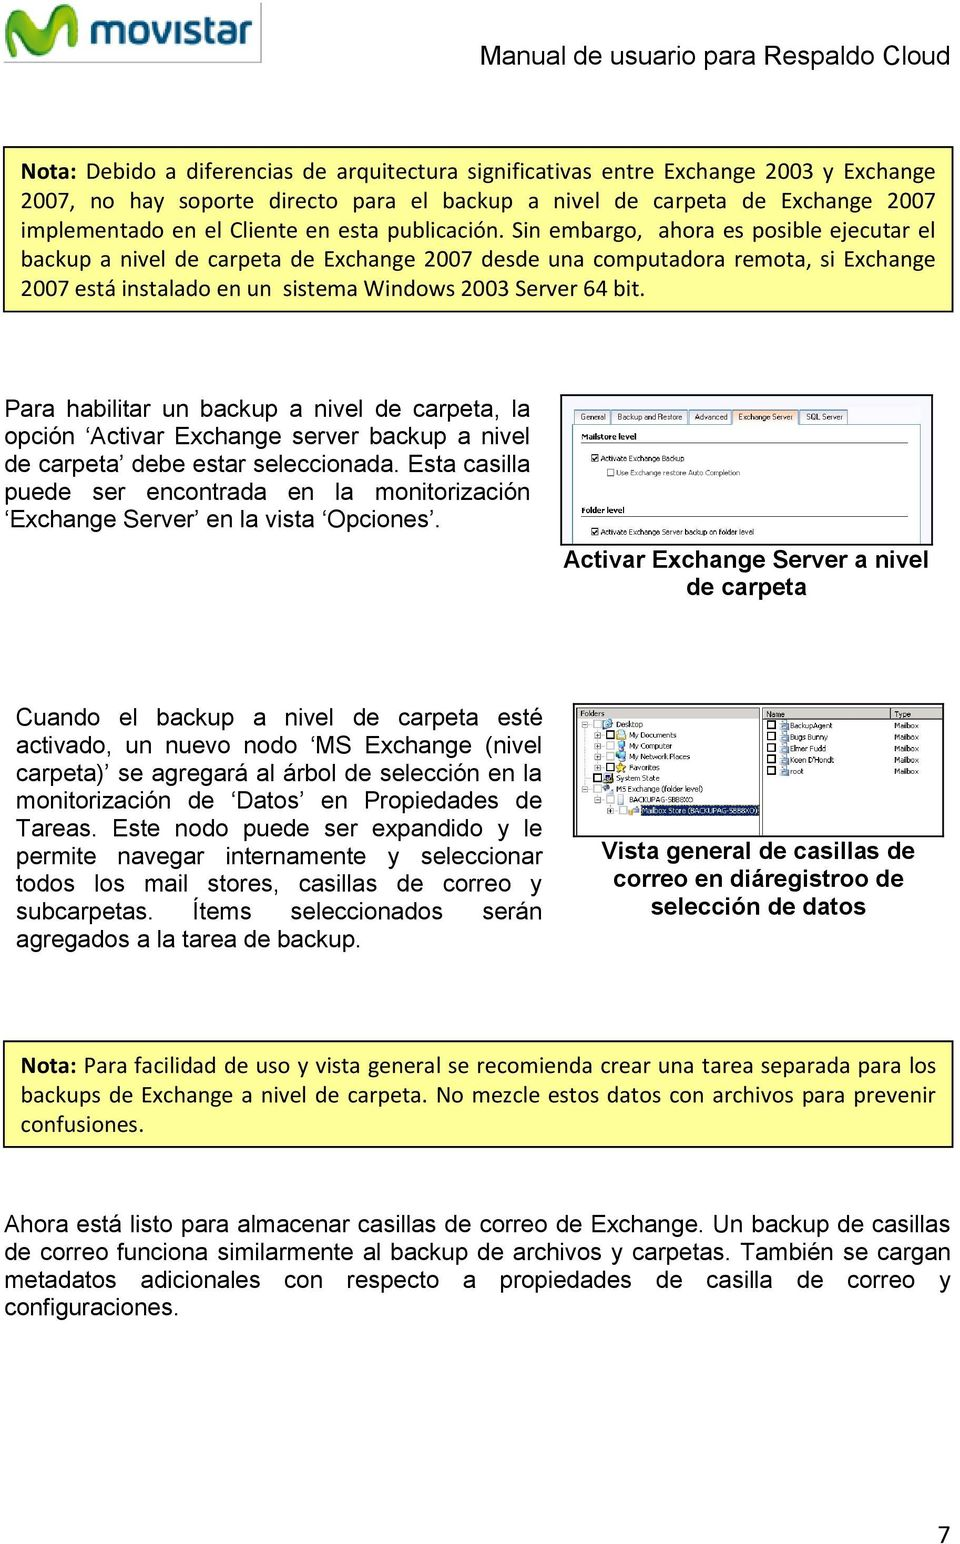 Sin embargo, ahora es posible ejecutar el backup a nivel de carpeta de Exchange 2007 desde una computadora remota, si Exchange 2007 está instalado en un sistema Windows 2003 Server 64 bit.